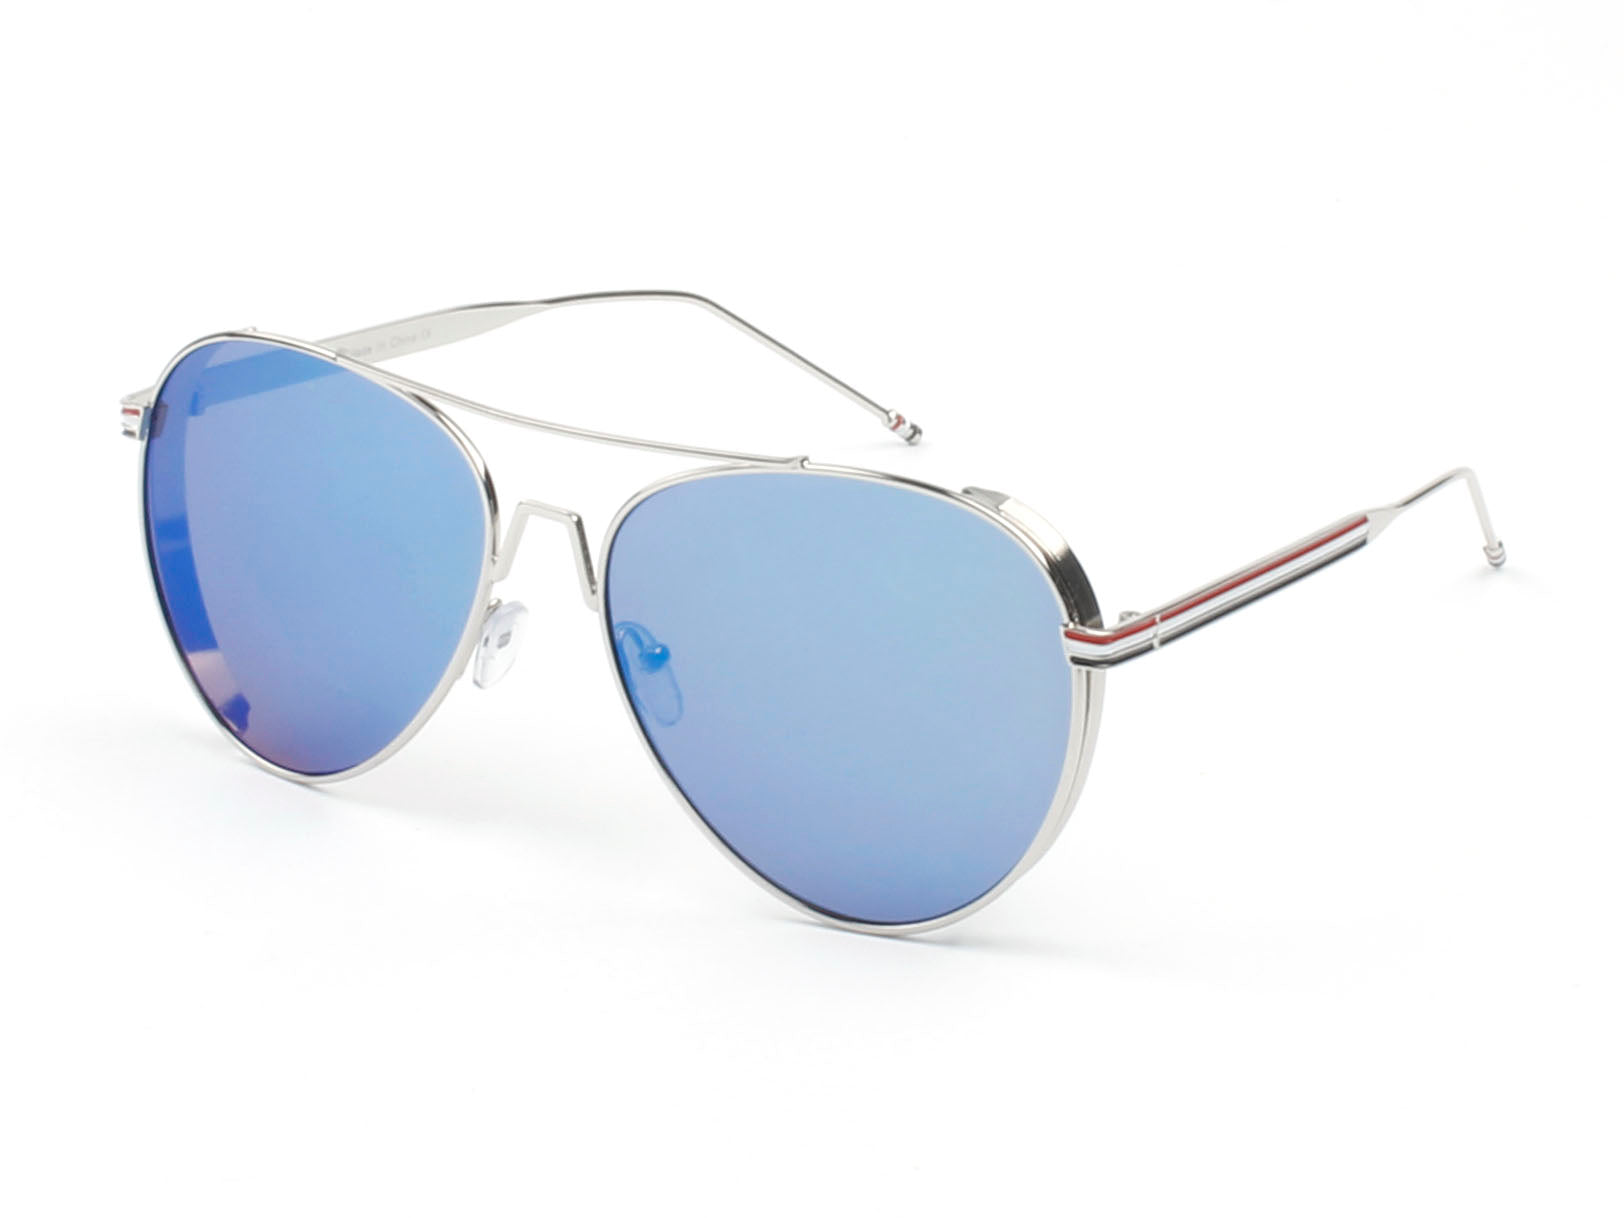 Classic Metal Aviator Fashion Sunglasses for Men and Women - Blue